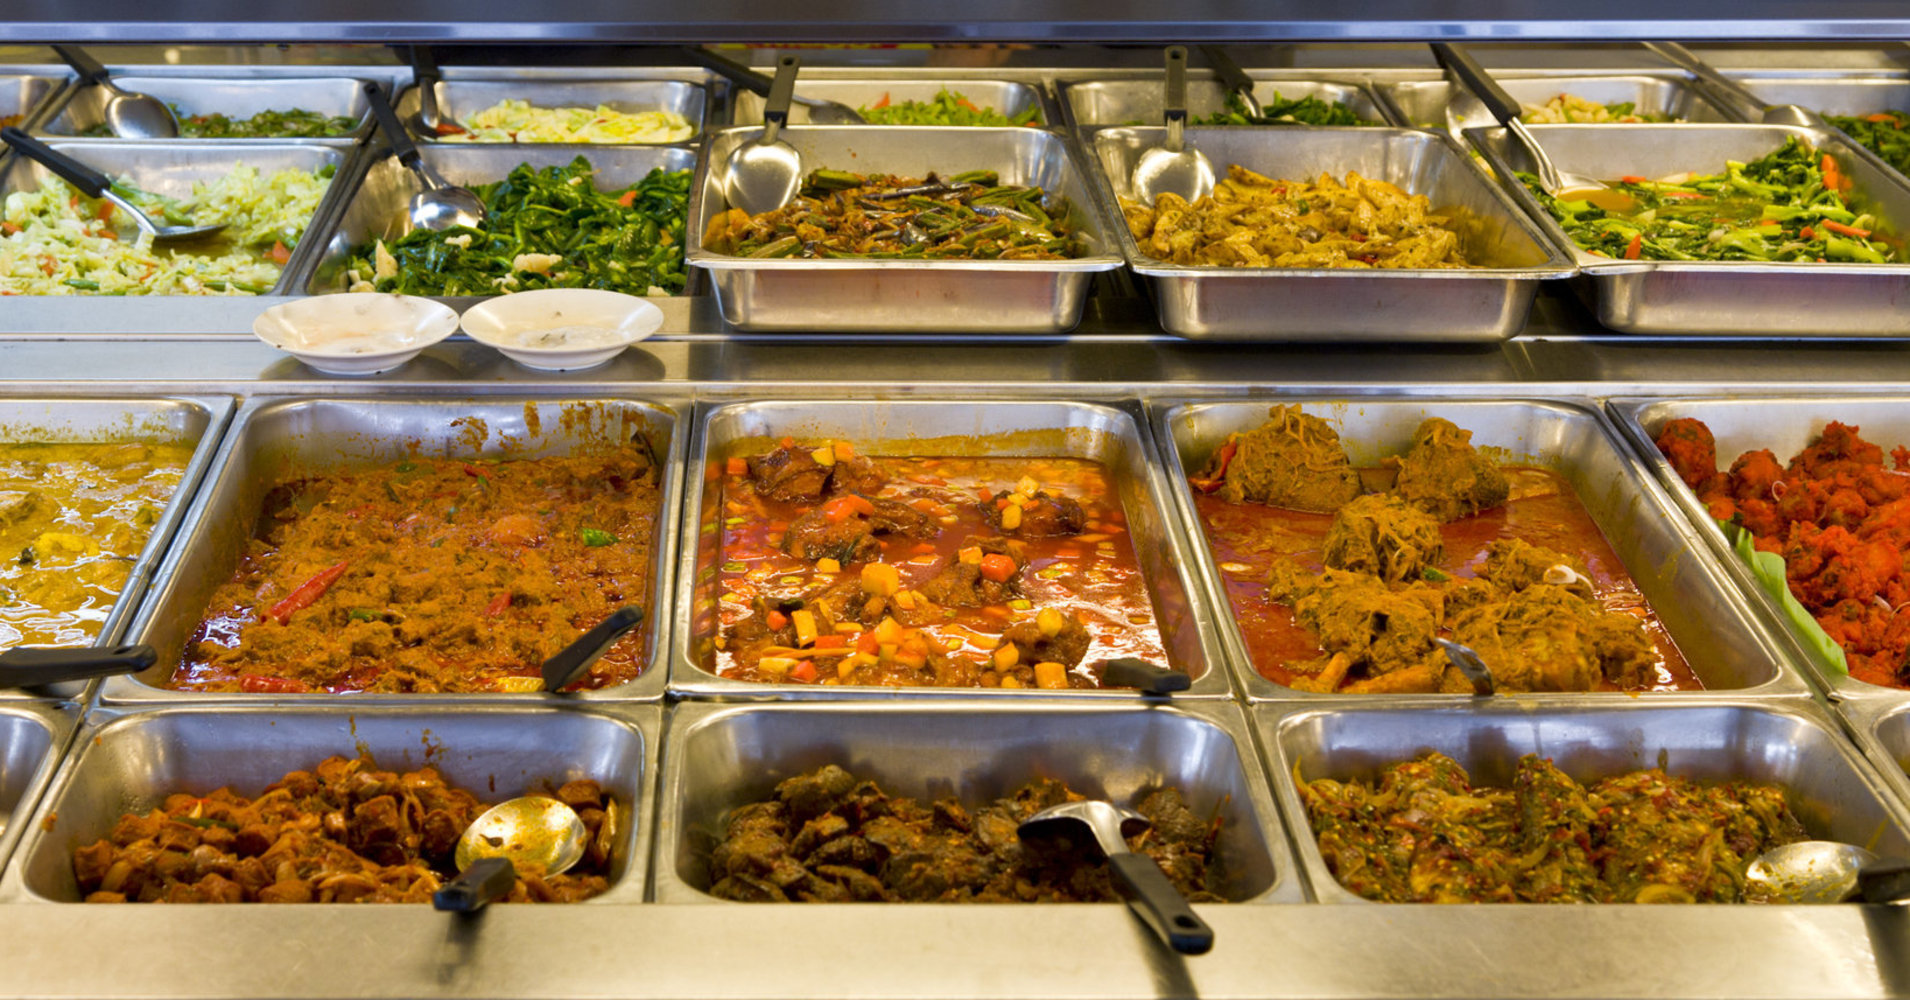 Buffet Cuisine This Is The No 1 Food To Avoid At Buffets At All Costs According